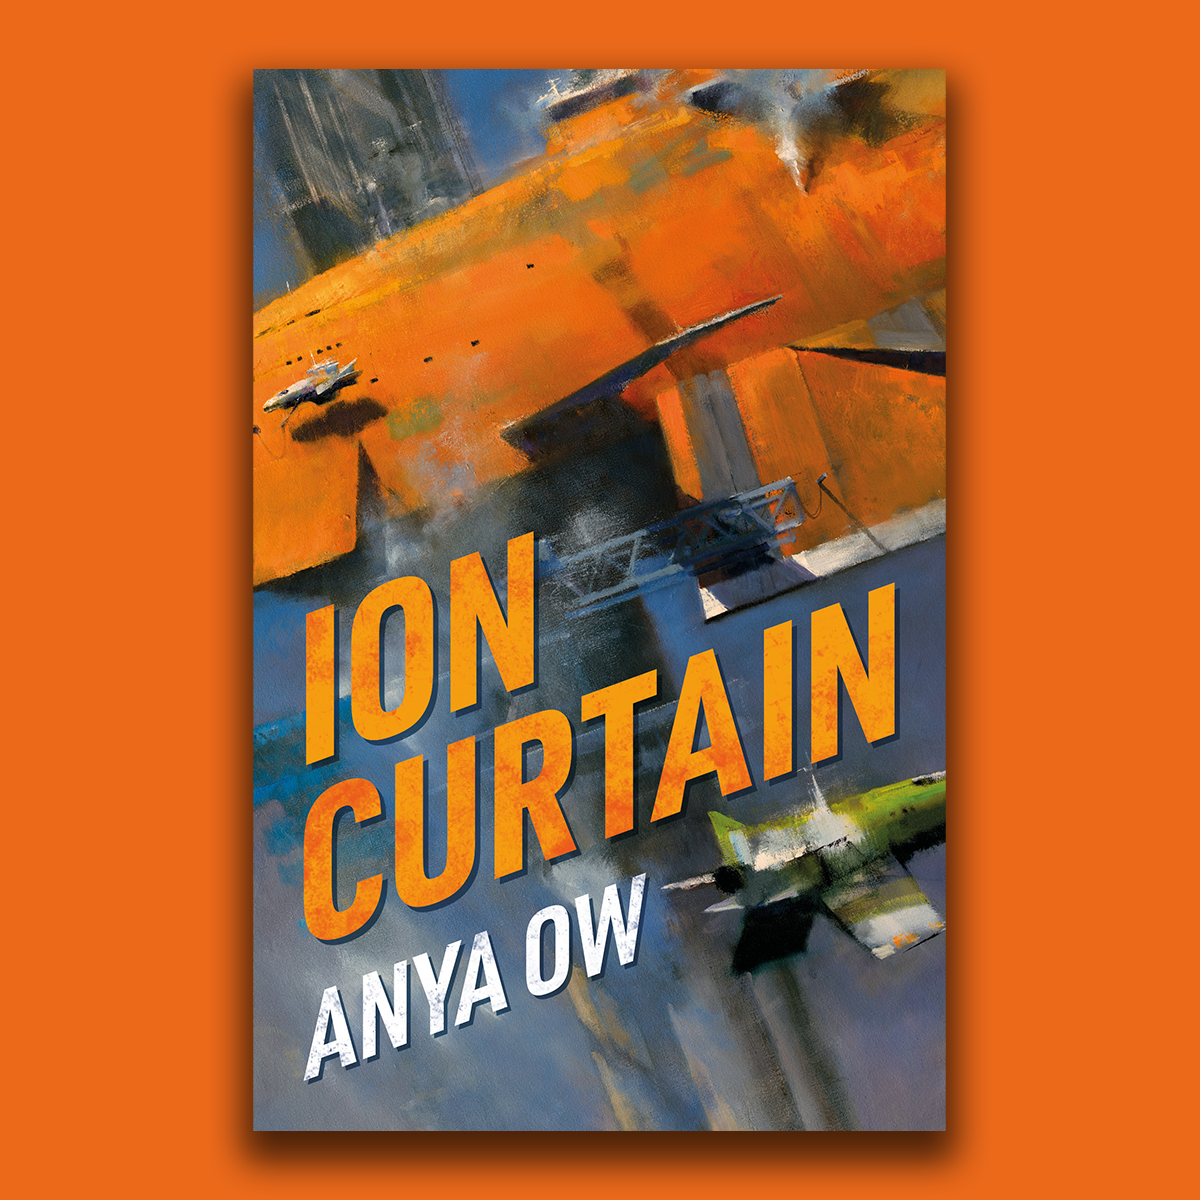 Revealing the cover for Ion Curtain by Anya Ow